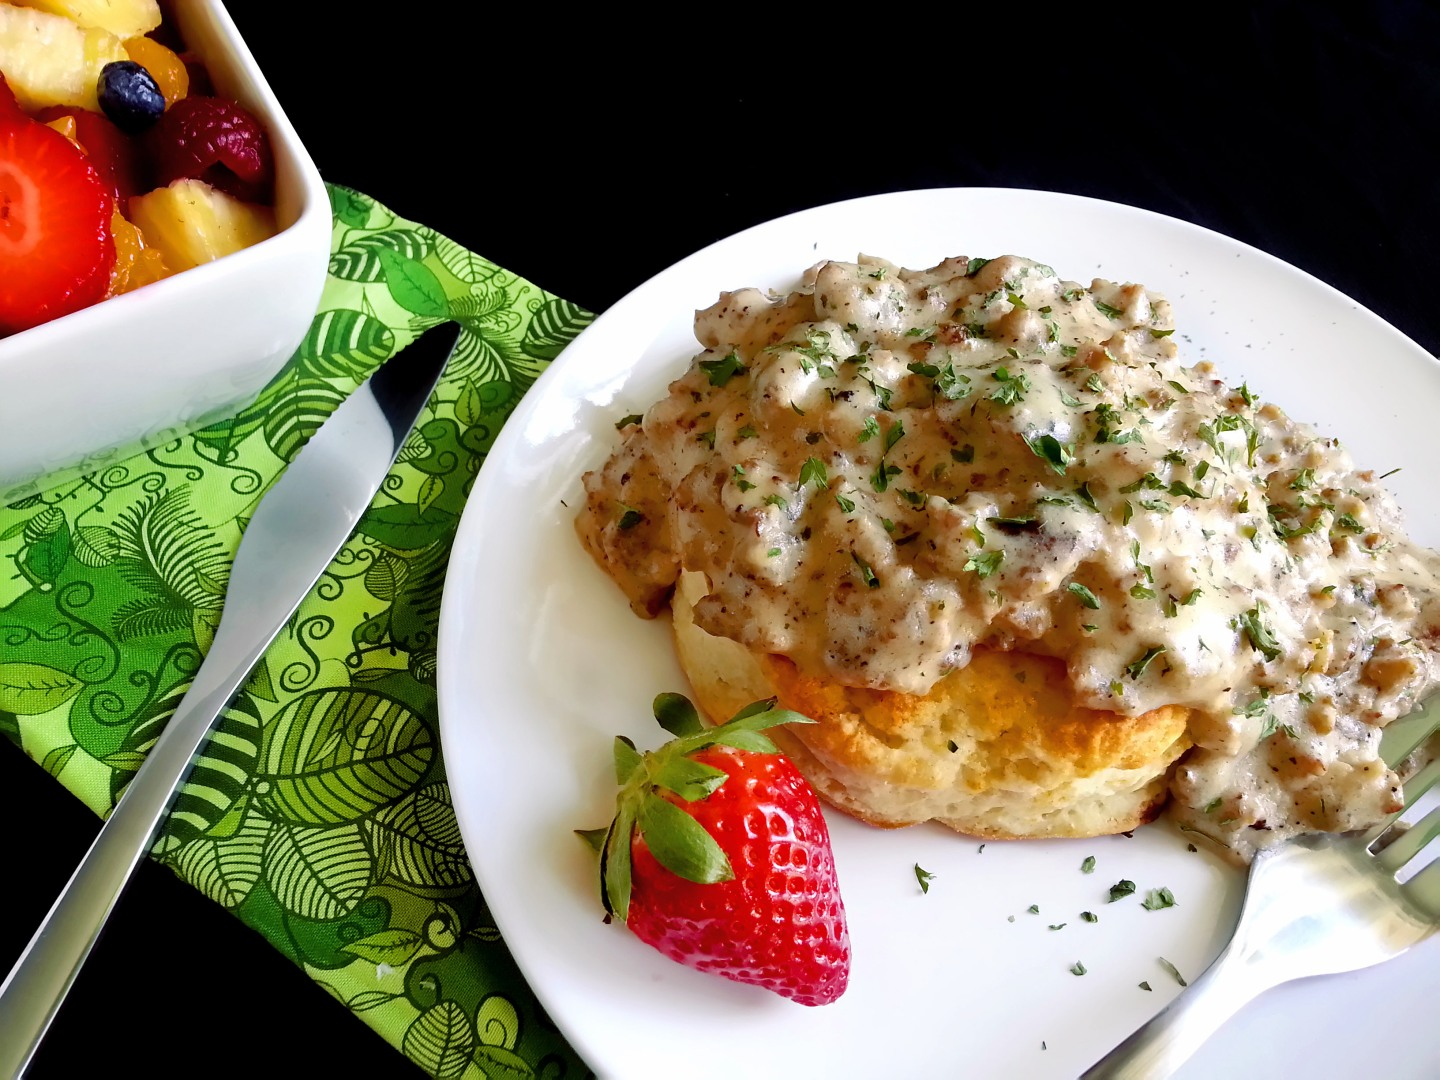 classic biscuits + sausage gravy